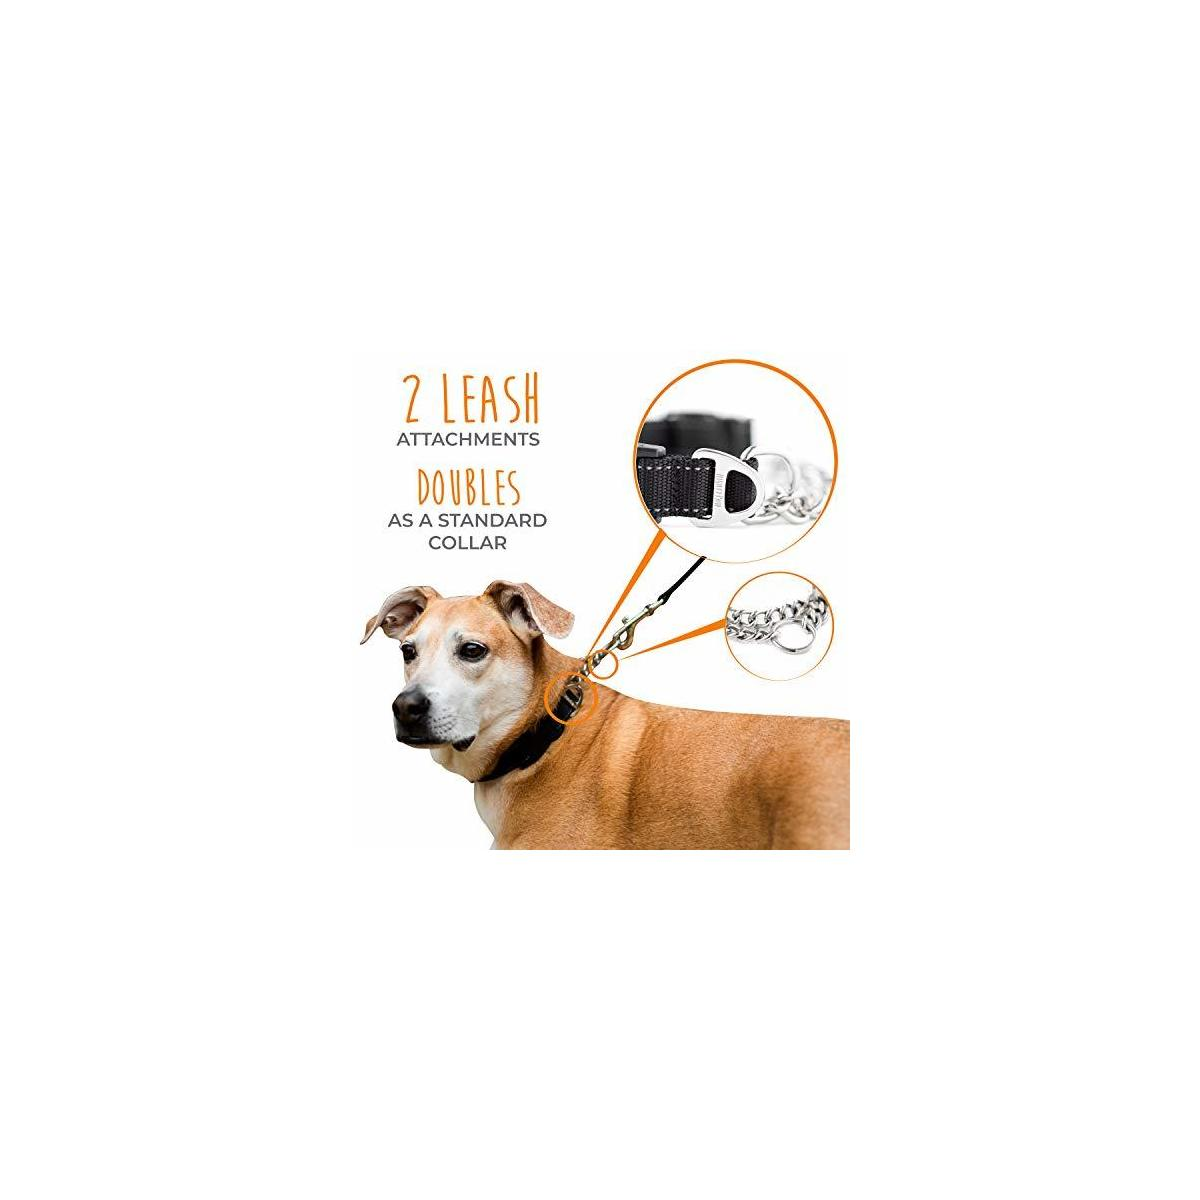 Mighty Paw Martingale Collar, Training Dog Collar, Limited Cinch Chain Pet Gear for No Pull Leash Walking